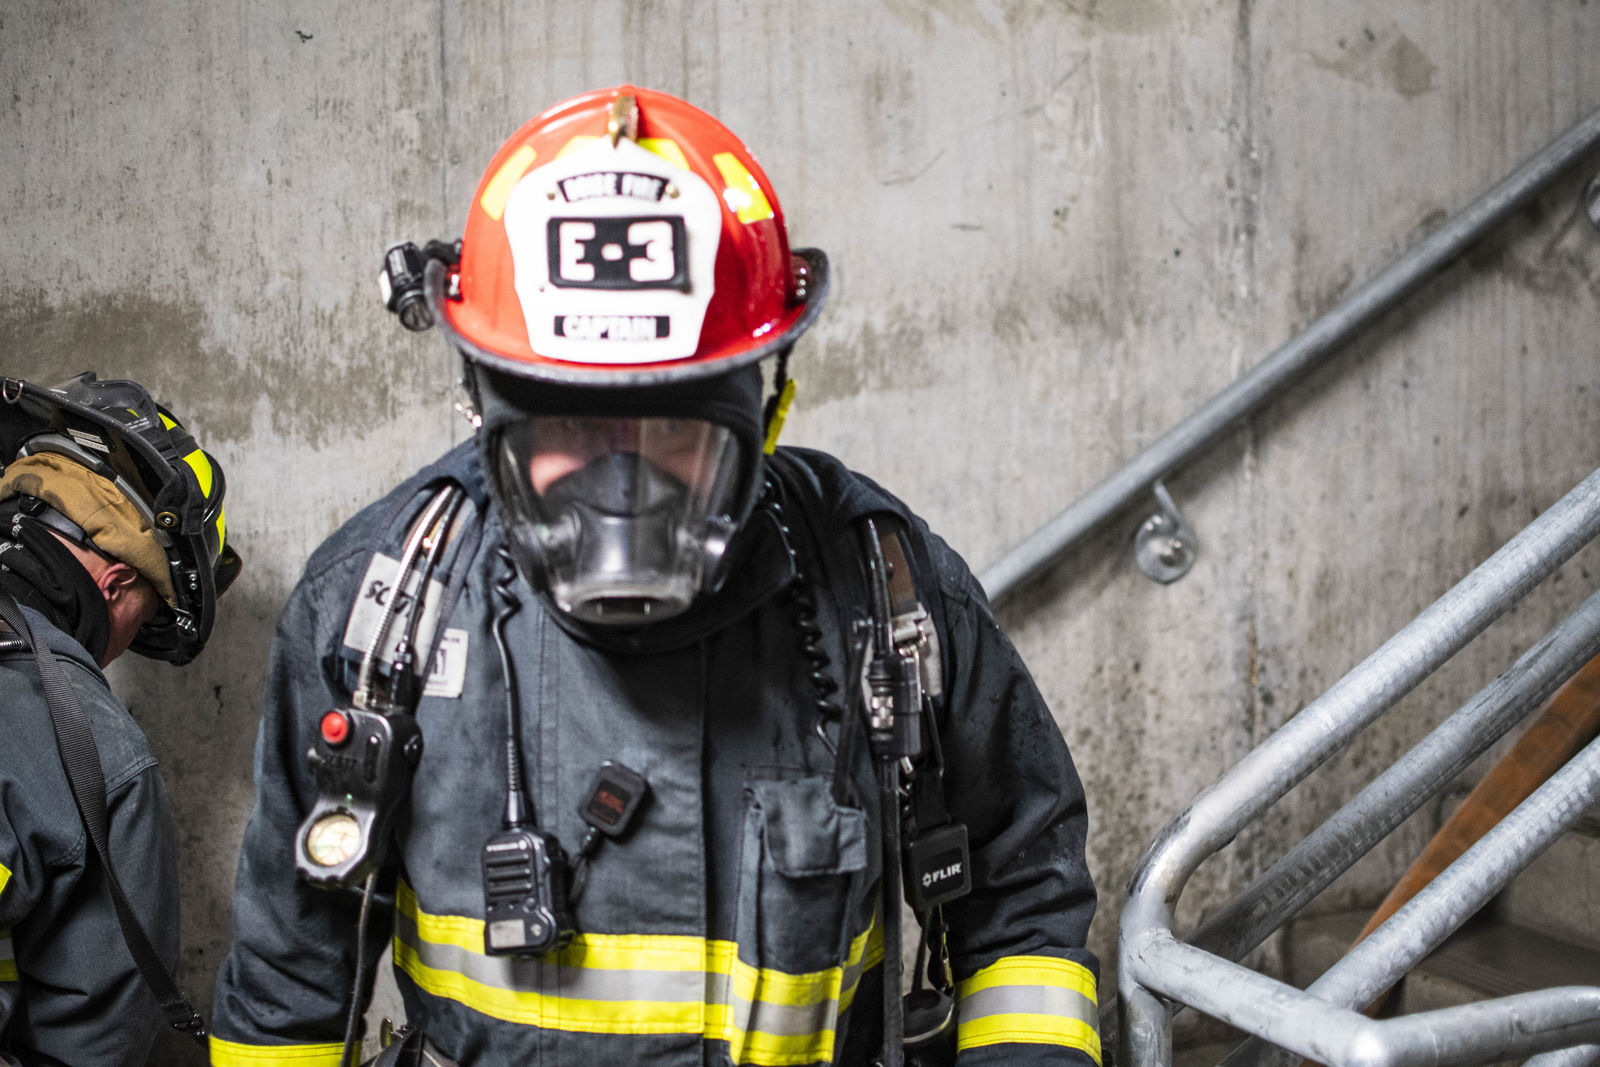 Boise Fire Department on Wednesday held its yearly high rise fire training. The department used its new high rise training facility which features propane props to create real life scenarios. (Photos by Axel Quartarone)